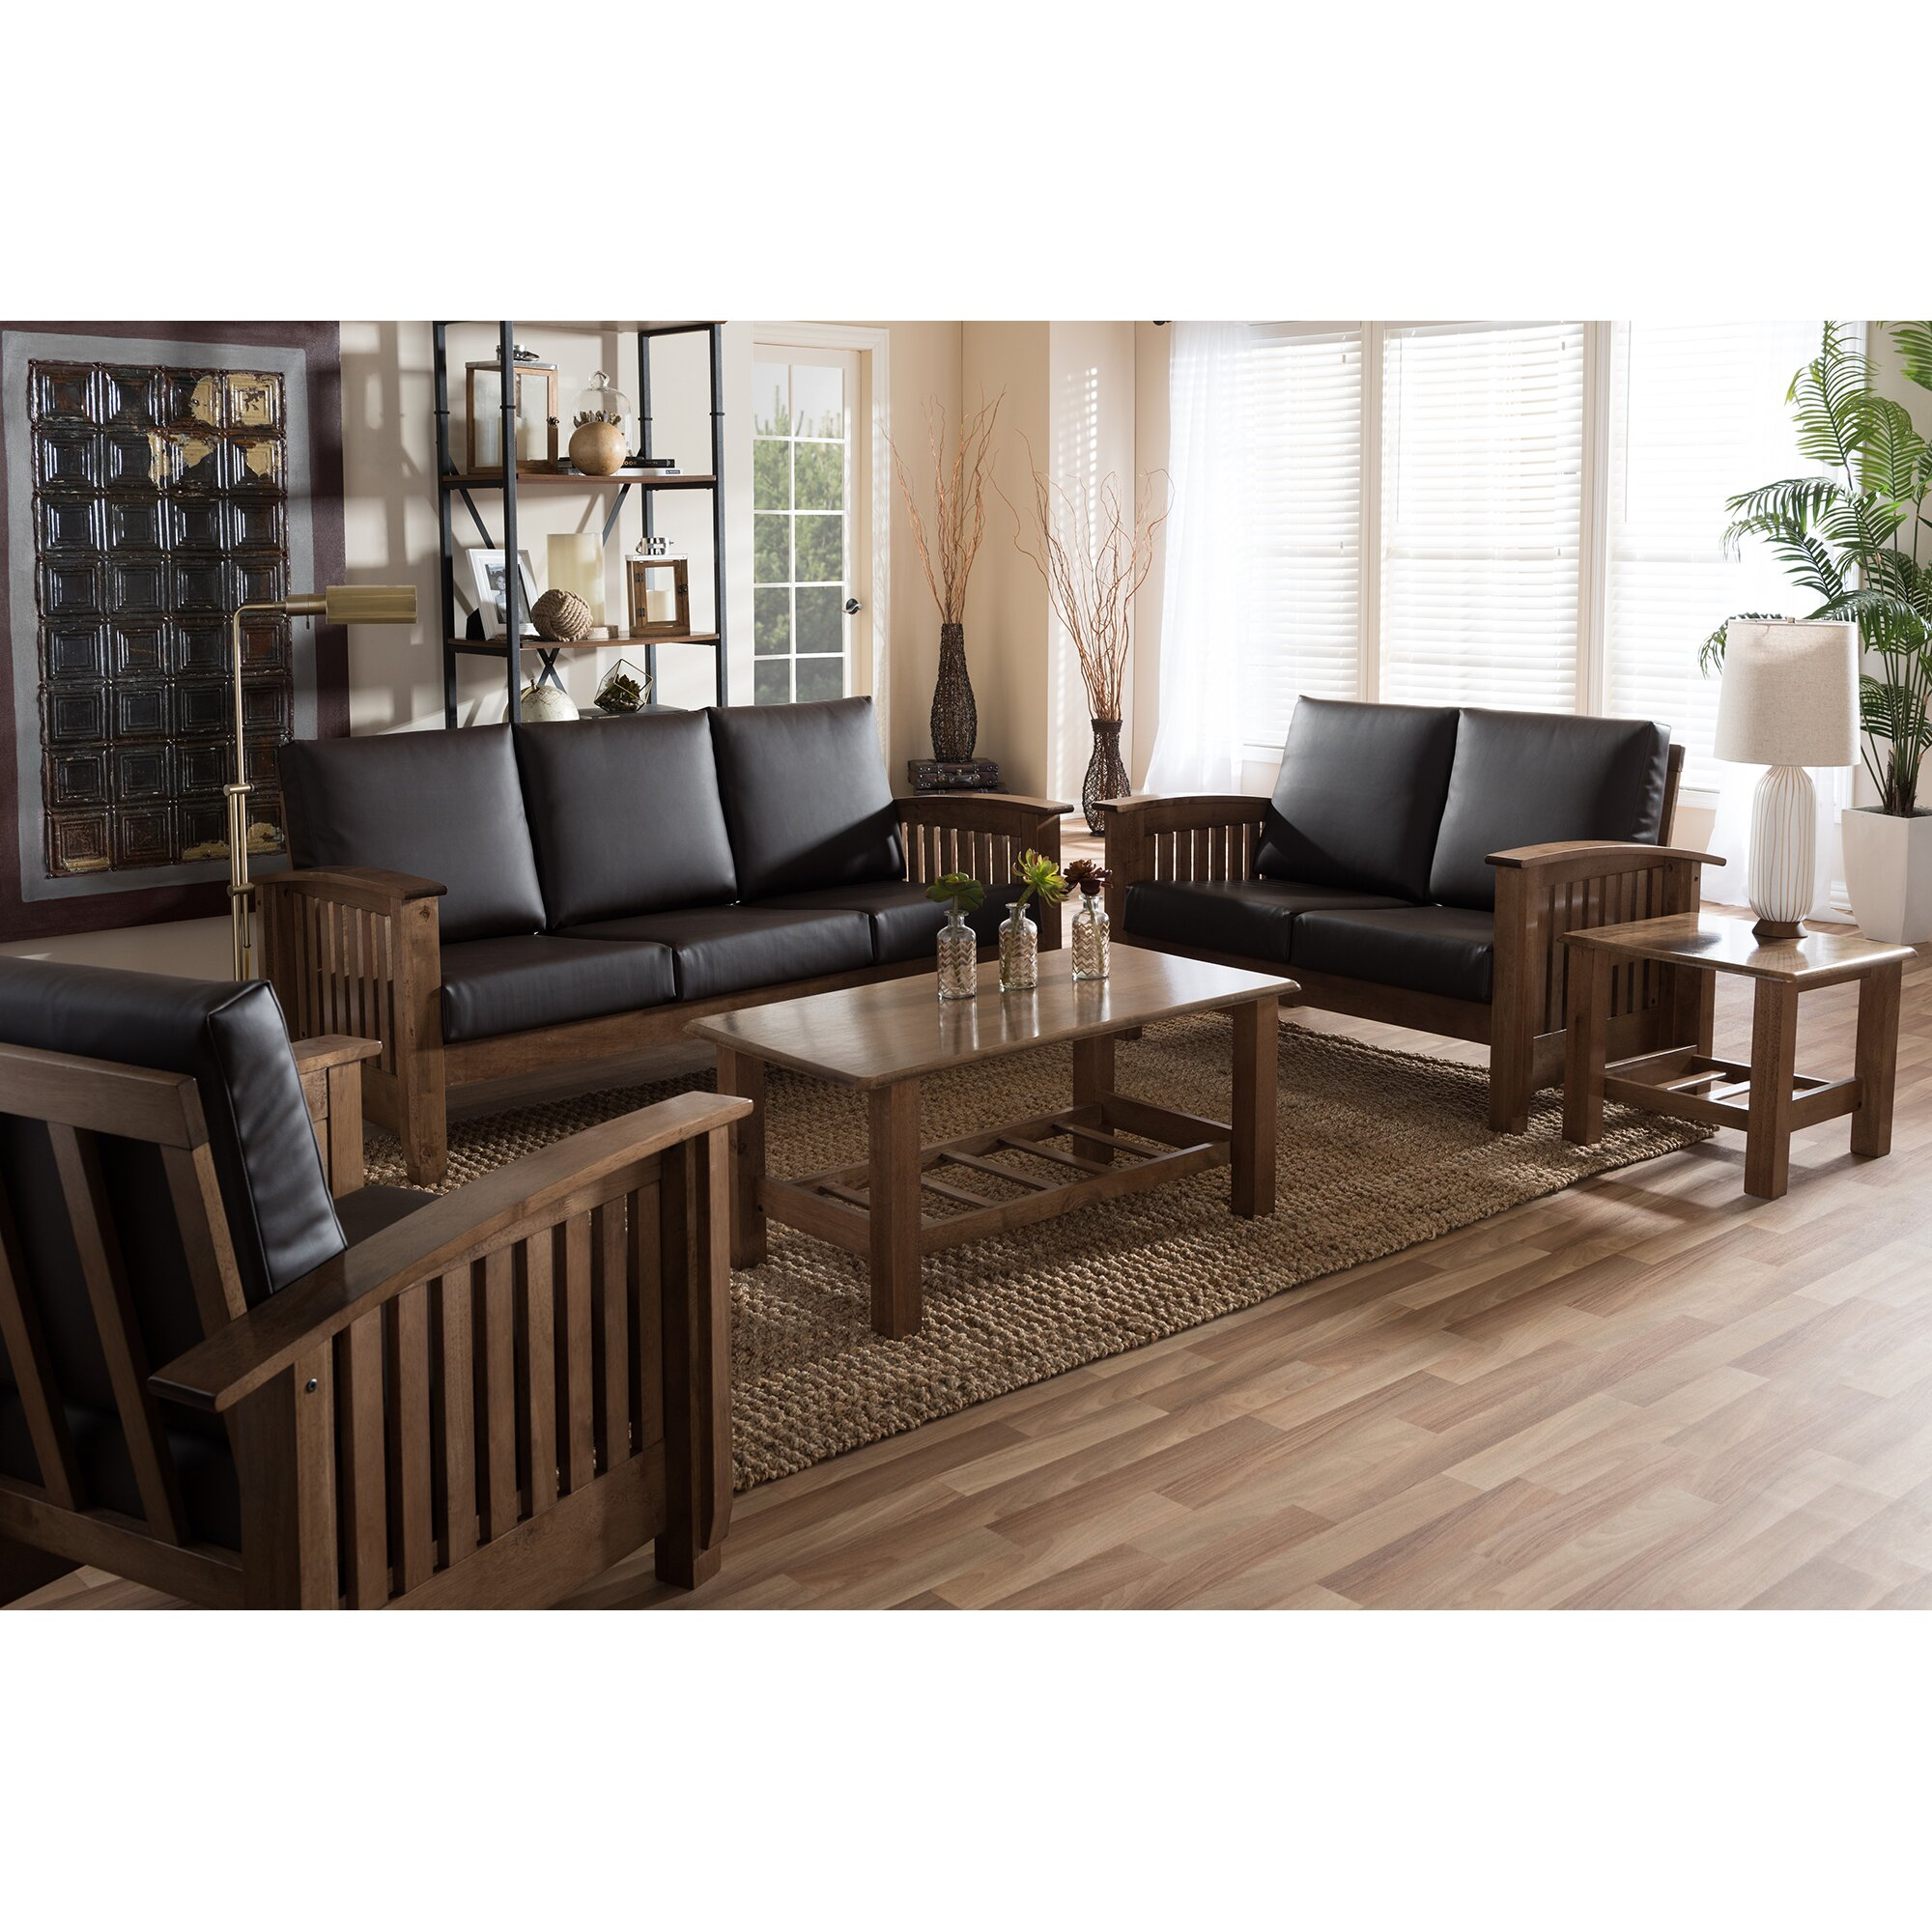 Baxton studio 5 piece living room set wayfair for 5 piece living room furniture